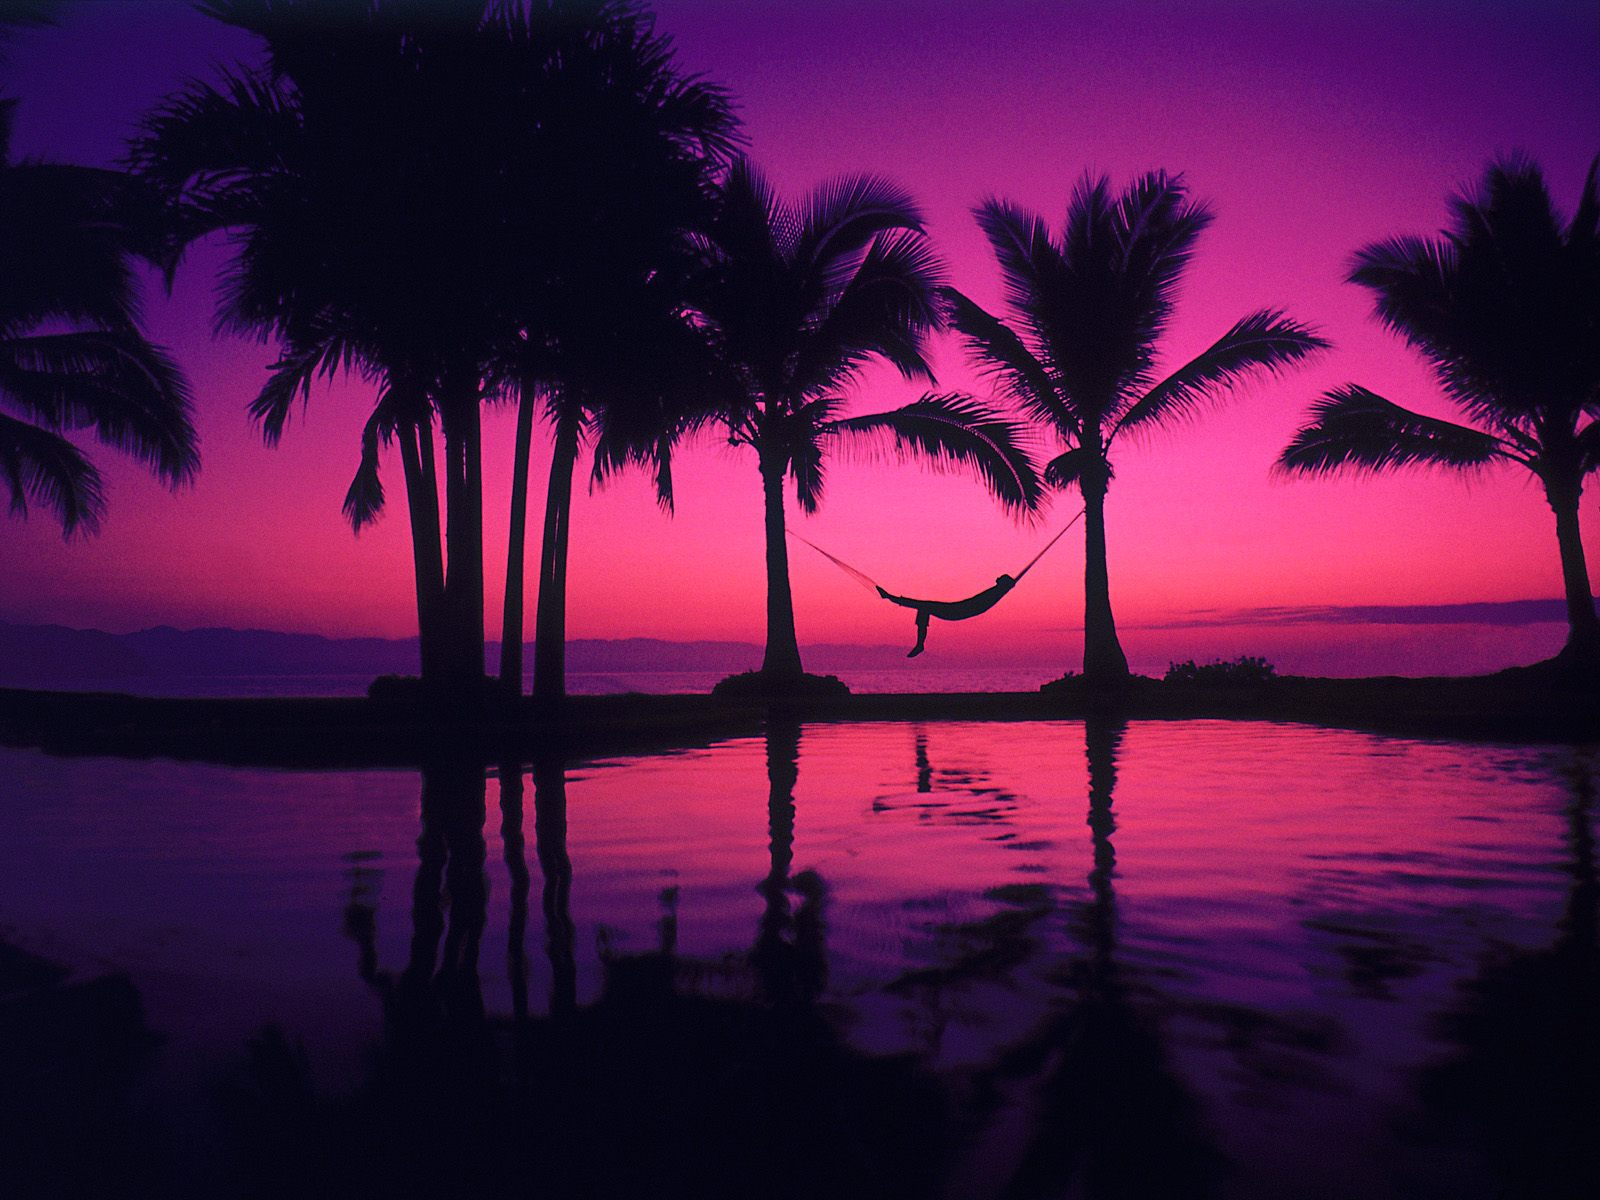 http://2.bp.blogspot.com/-_-SBgmIElq0/UEH1eSH_zkI/AAAAAAAADf4/ORHk6Va_-_4/s1600/6478_beach_hd_wallpapers_purple_sunset_sea.jpg